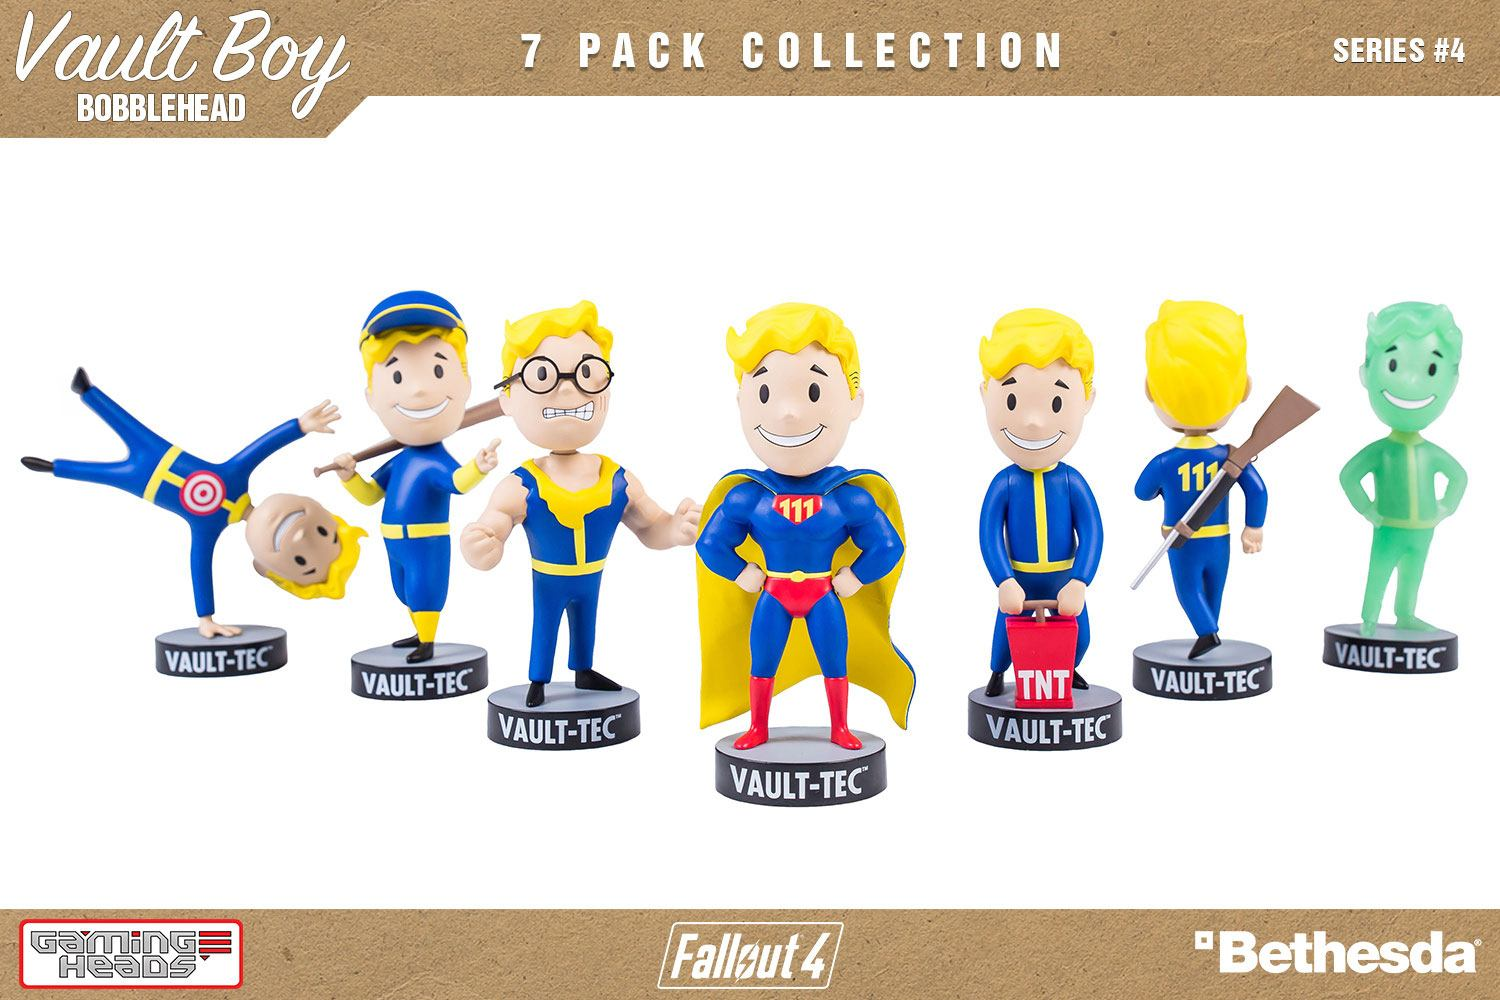 Fallout 4 Bobble-Heads 13 cm Vault-Tec Vault Boy 111 Series 4 Set (28)